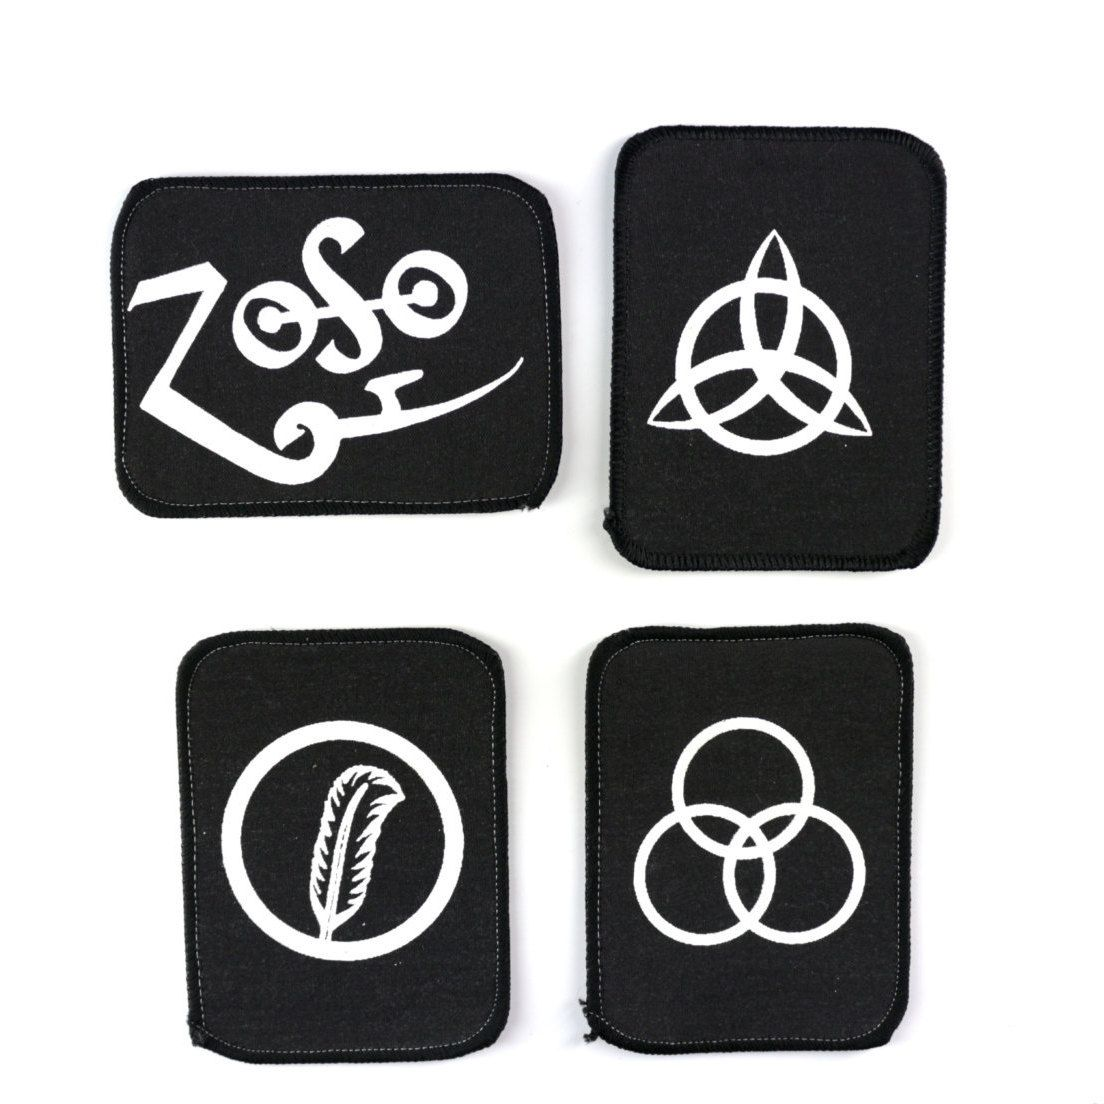 Led Zeppelin Patch Set Vintage Zoso Symbol Sew On Patches